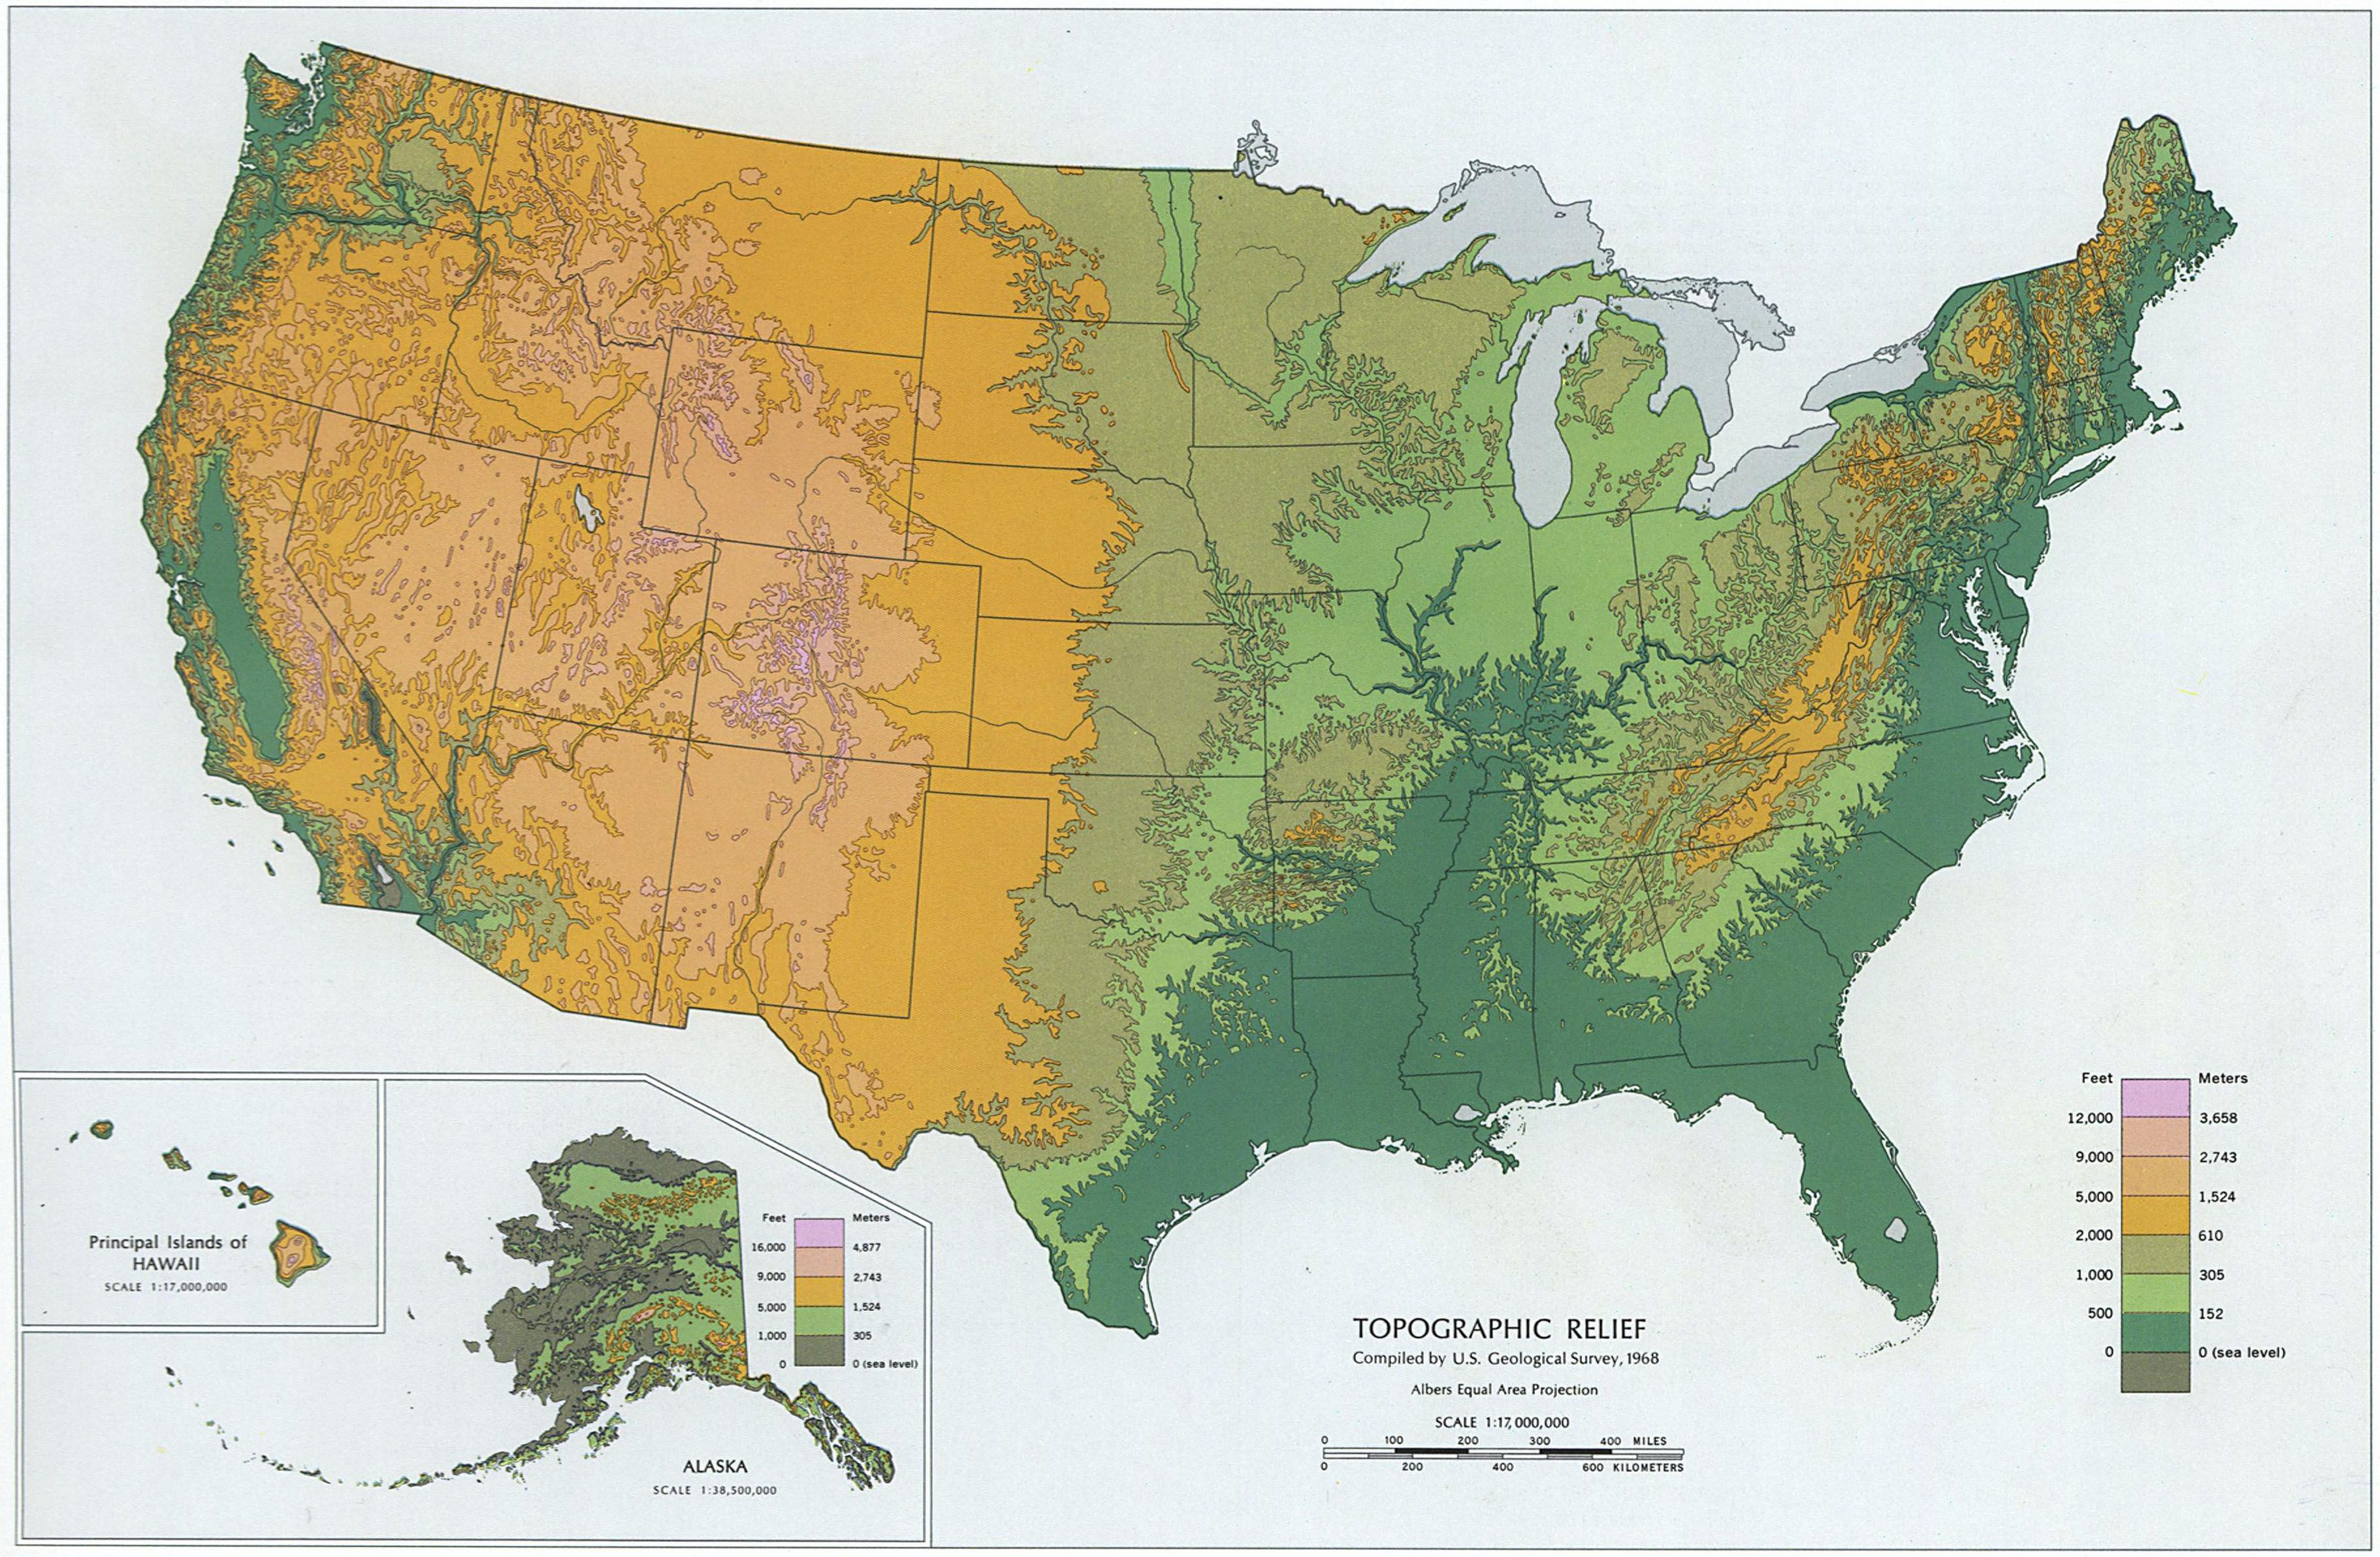 topographical map of US | A Crafty Lawyer | Map, Us map, Topographic map